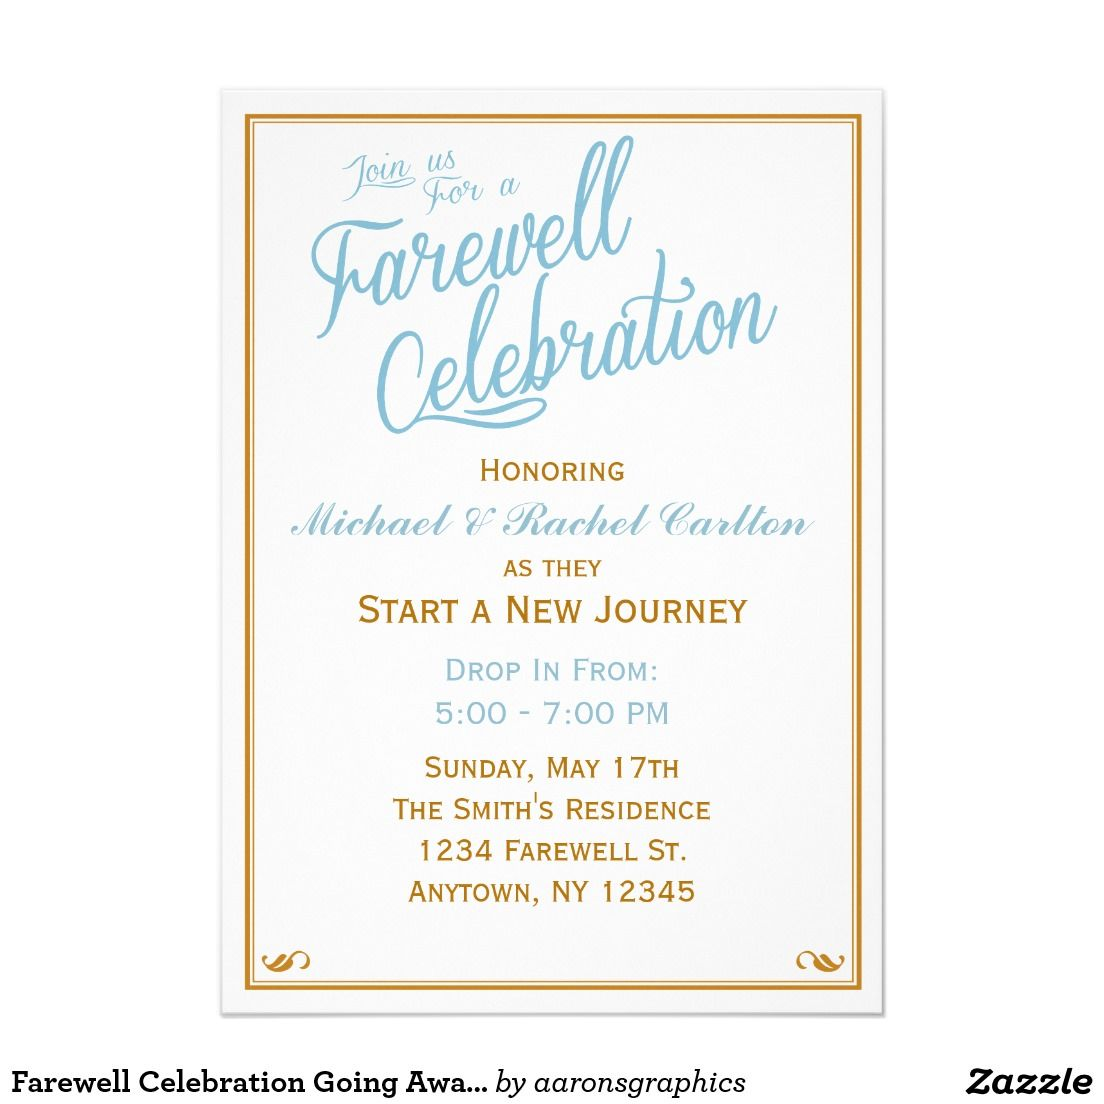 Farewell Celebration Going Away Invitation Zazzle Com Farewell